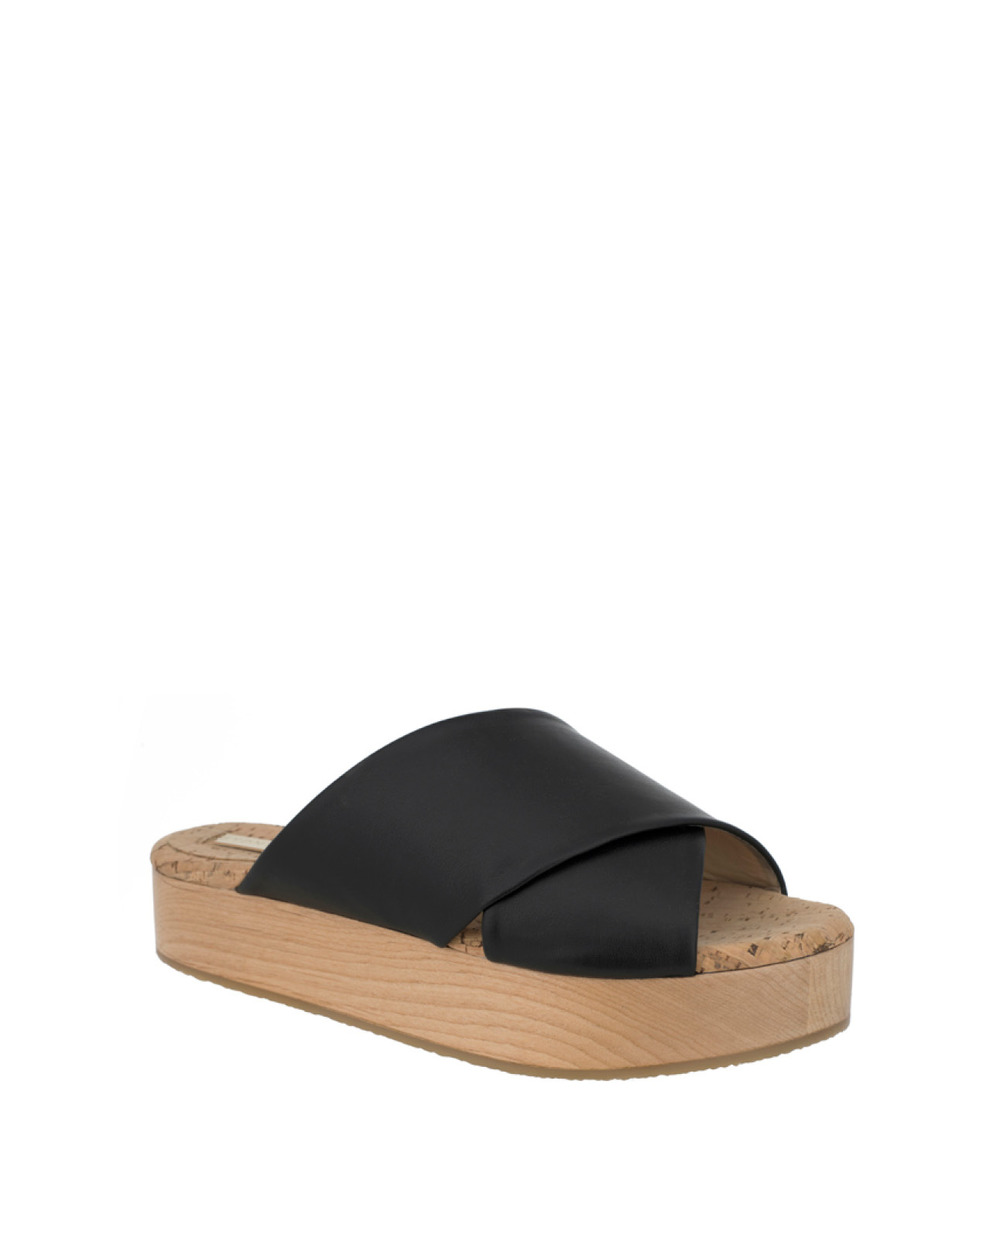 Sydney Brown Cross Sandal